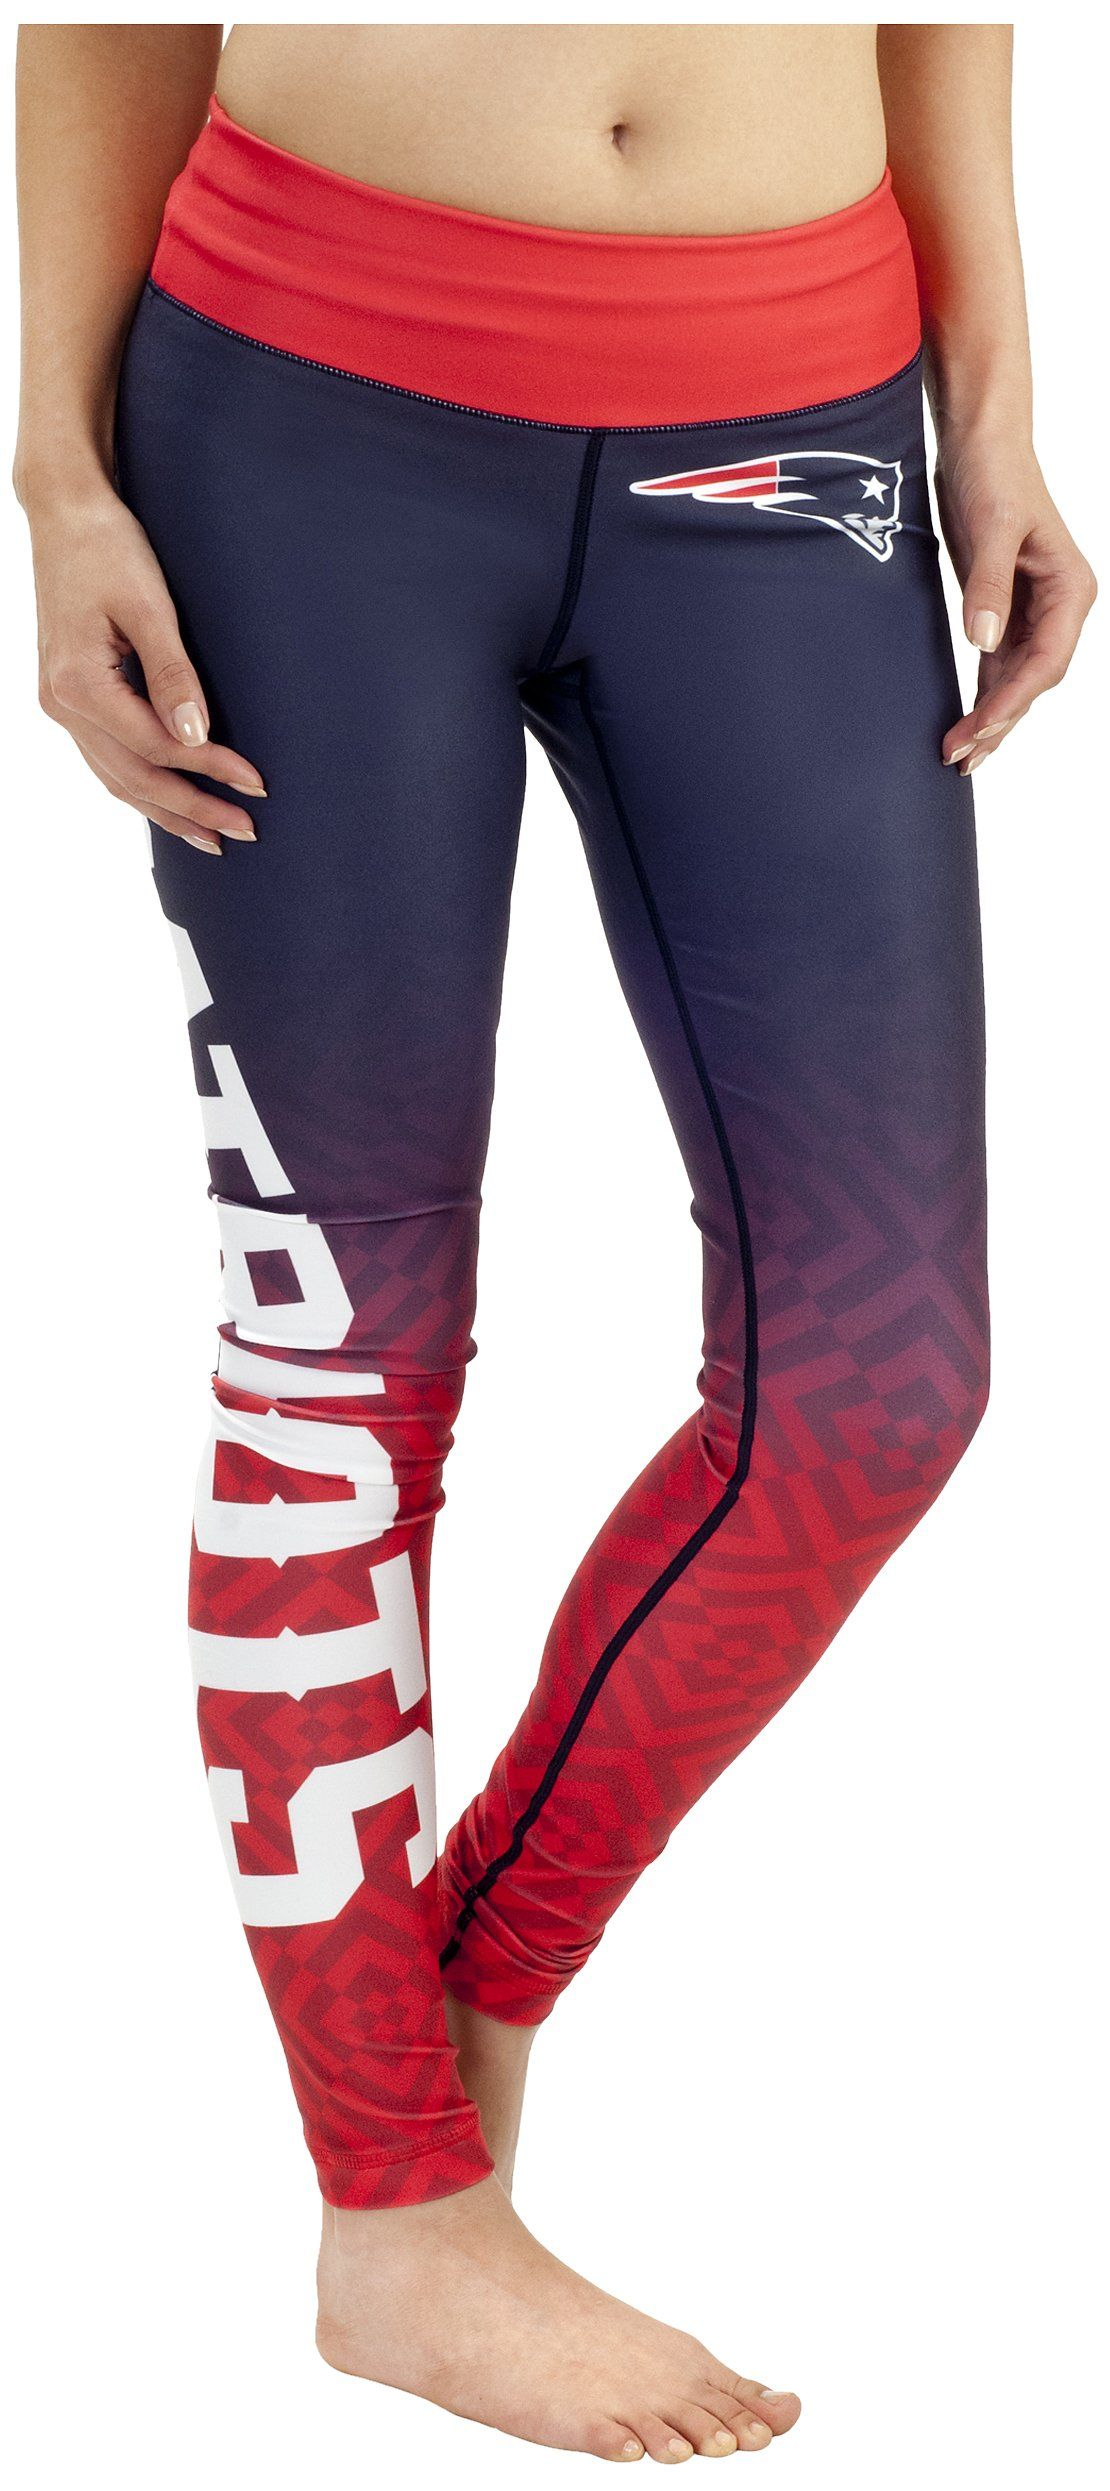 948c88fd964c2 NFL Arizona Cardinals Gradient Print Legging, Red, Large | Clothes ...